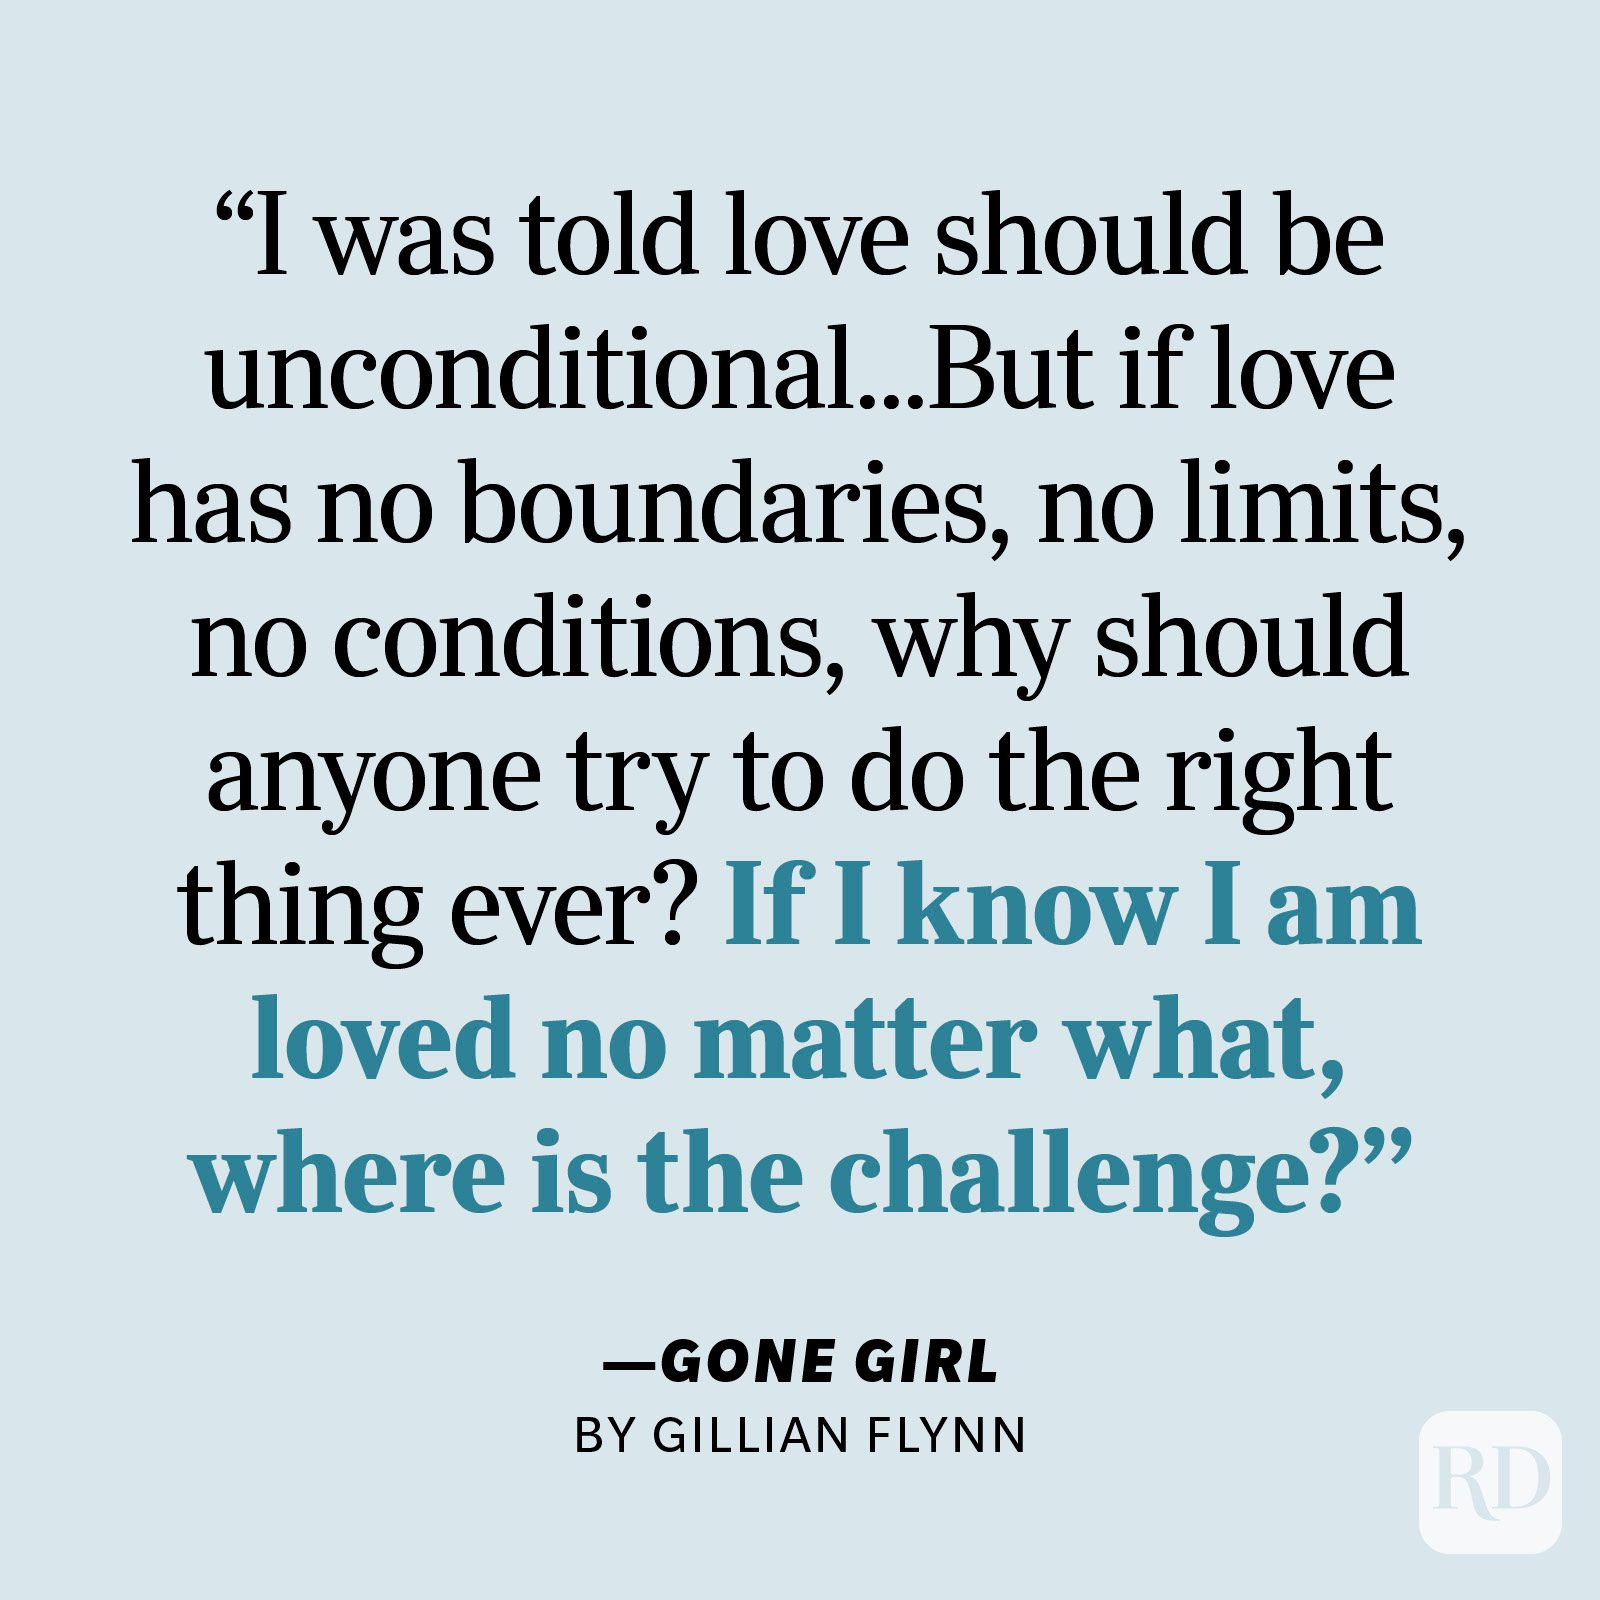 """Gone Girl by Gillian Flynn     """"I was told love should be unconditional. That's the rule, everyone says so. But if love has no boundaries, no limits, no conditions, why should anyone try to do the right thing ever? If I know I am loved no matter what, where is the challenge?"""""""